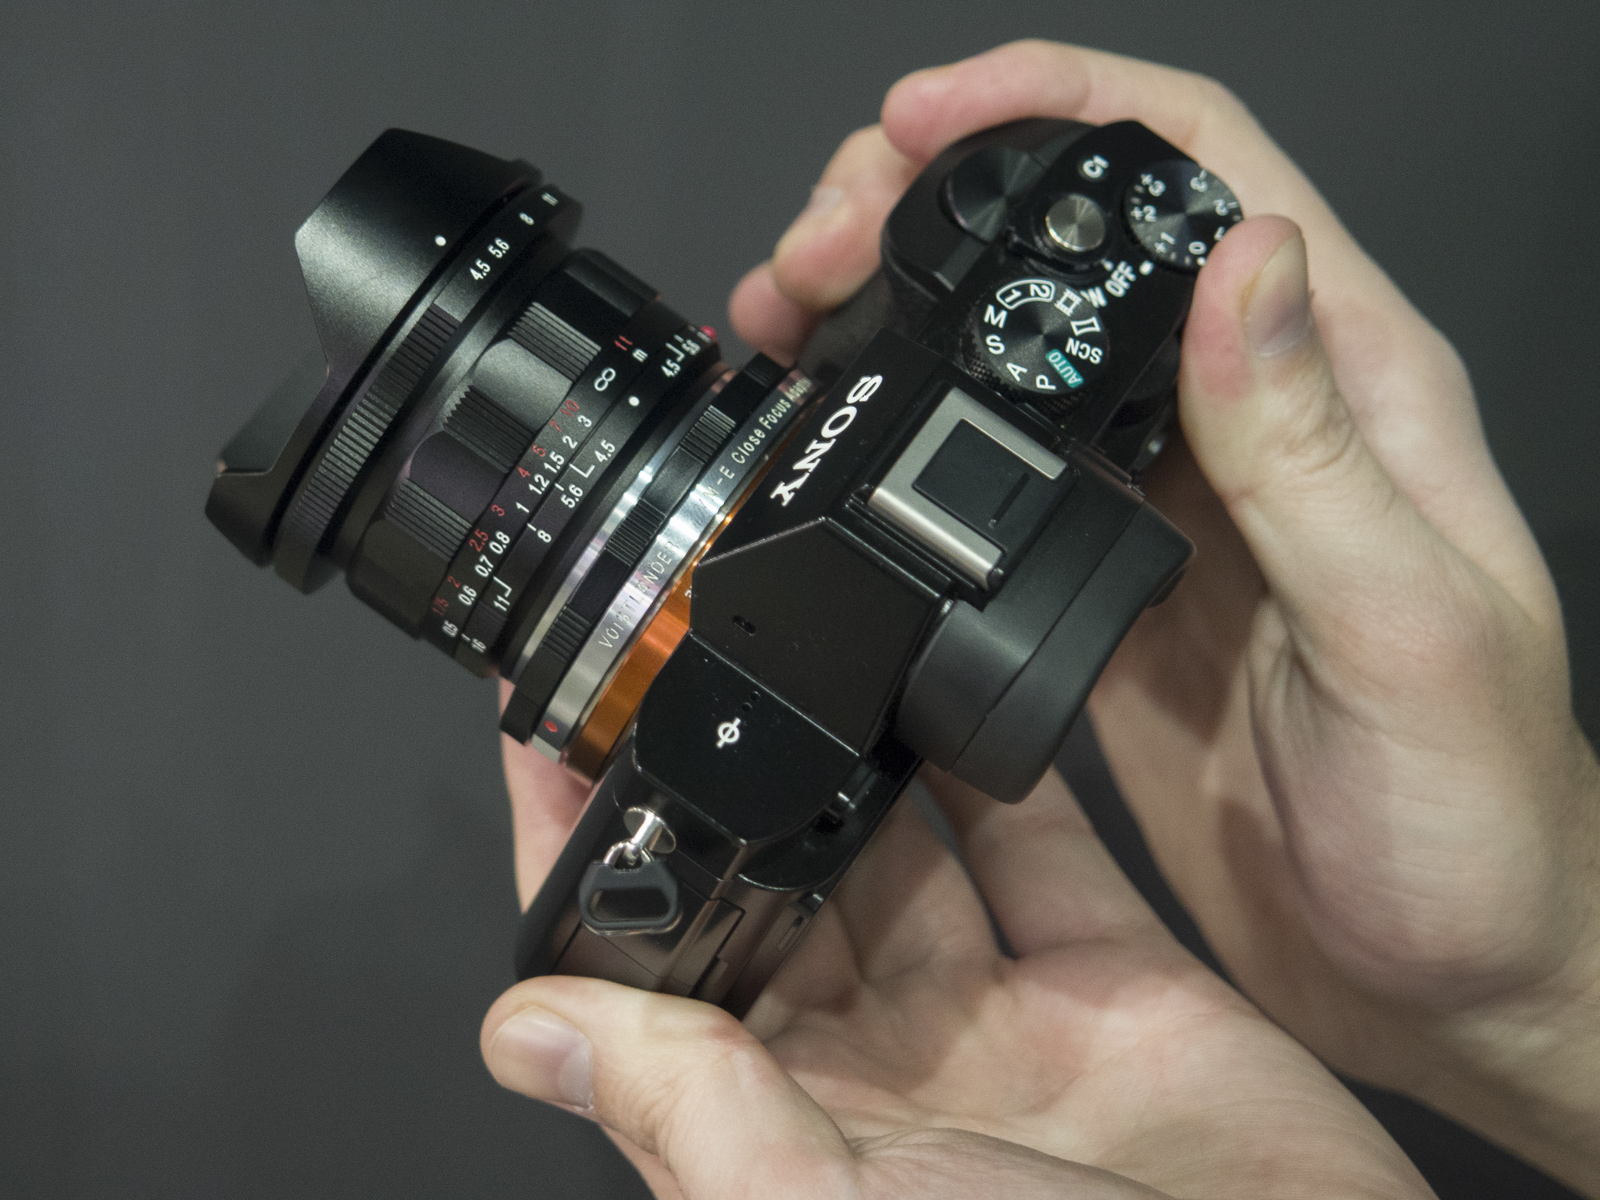 New Sony URX-P03D is compatible with all Alpha cameras. And its rumored to cost less than